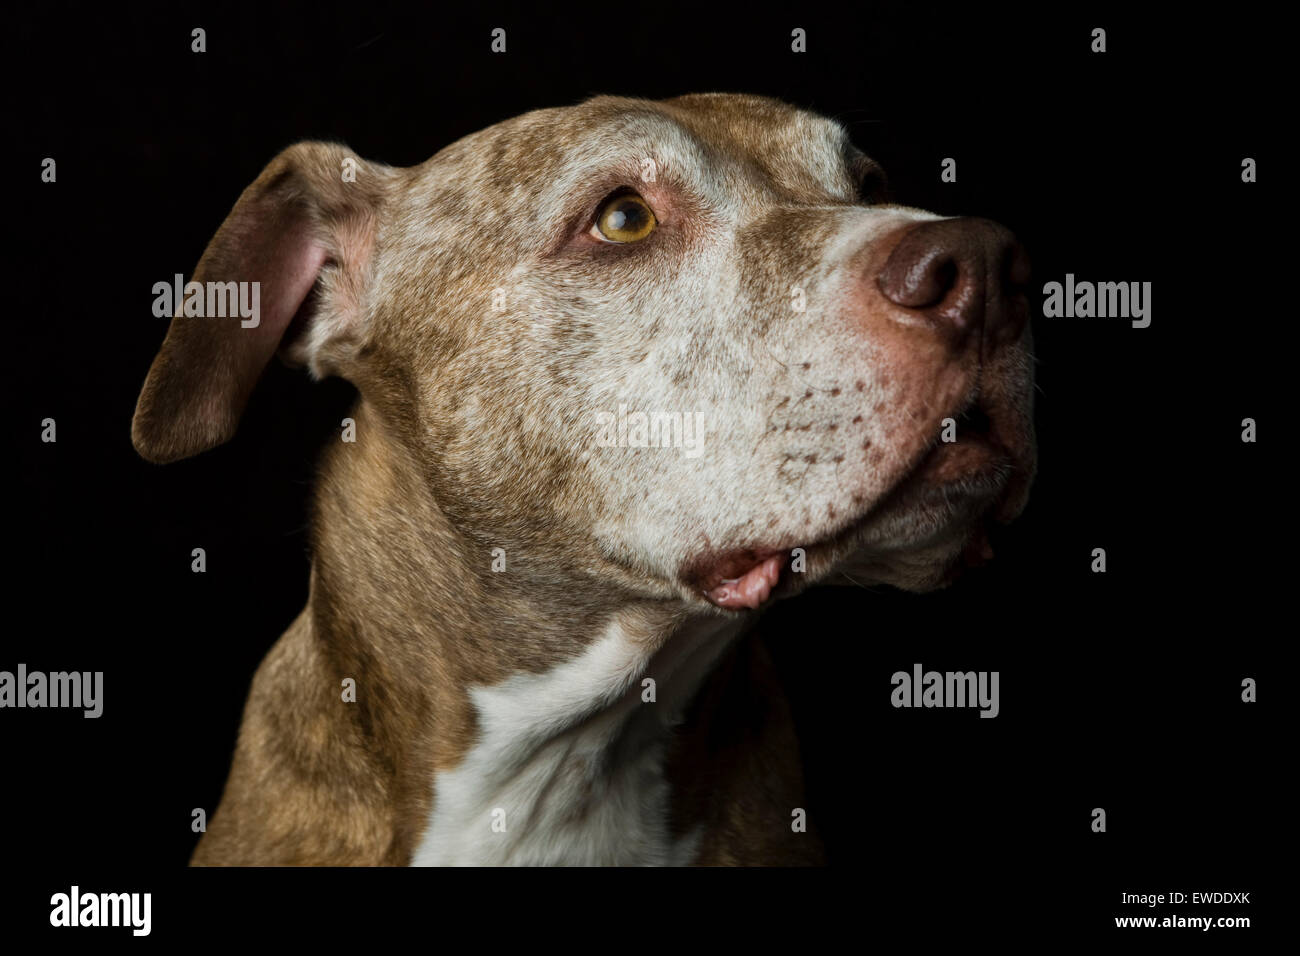 Profile headshot studio portrait of a wise senior Pitbull dog looking upward in anticipation against a black background - Stock Image